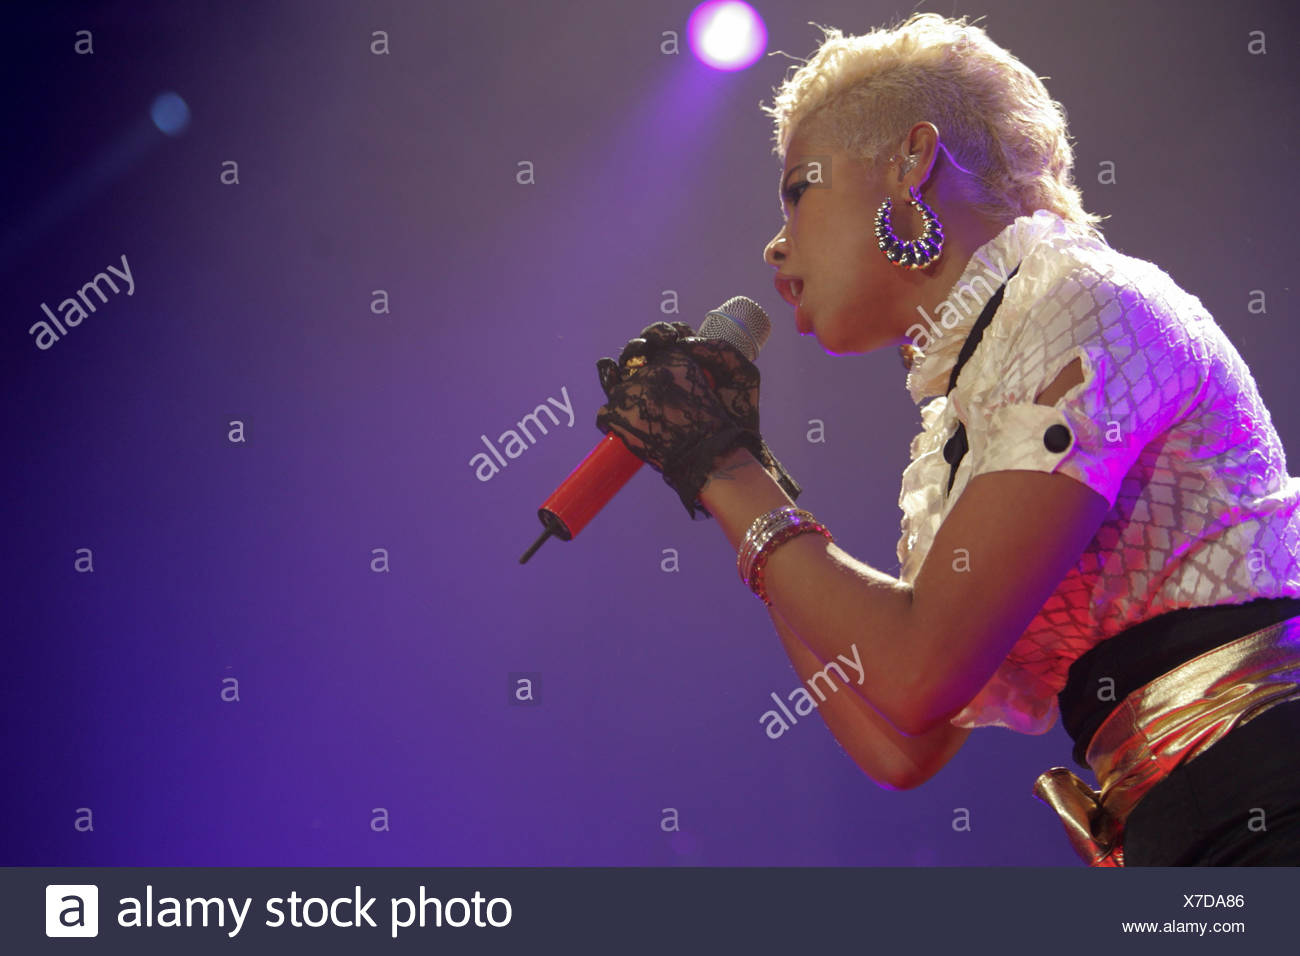 Kelis Rogers, US hip-hop and R&B singer, live at Energy Stars For Free in the Zurich Hallenstadion, Switzerland - Stock Image